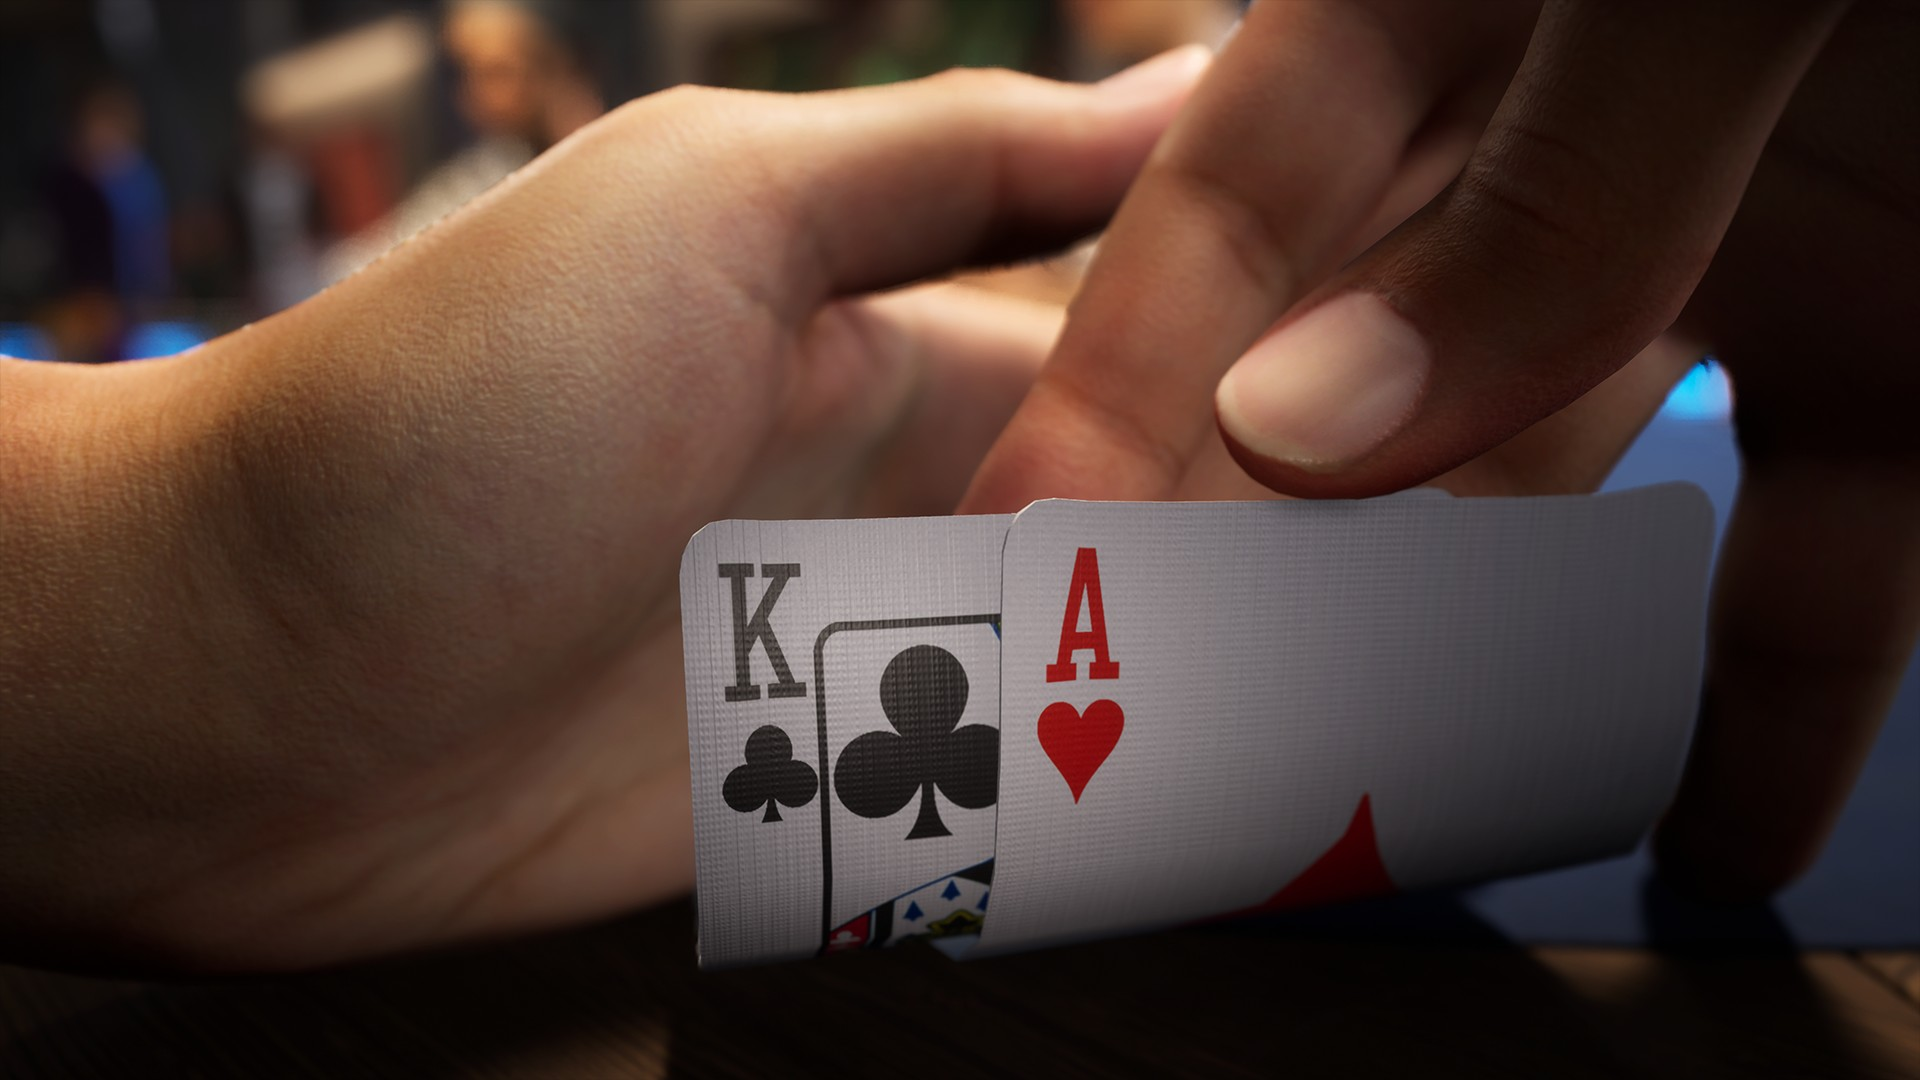 Does Online Casino Sometimes Make You Feel Silly?